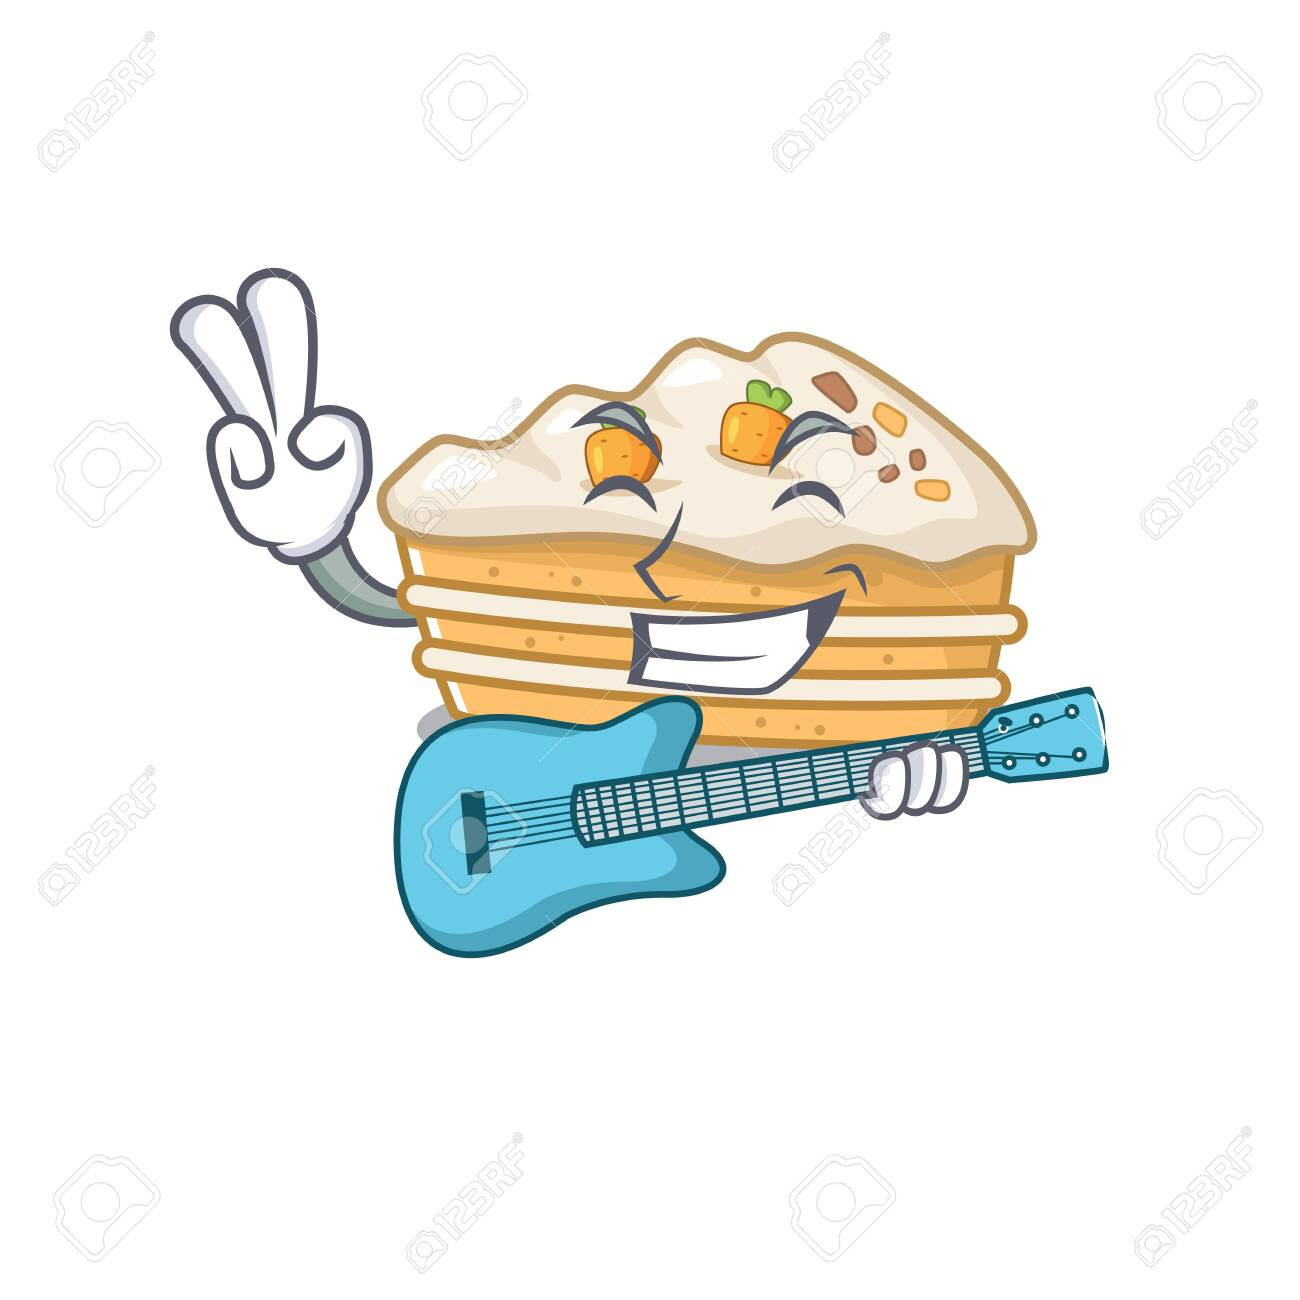 A picture of carrot cake playing a guitar - 140171750